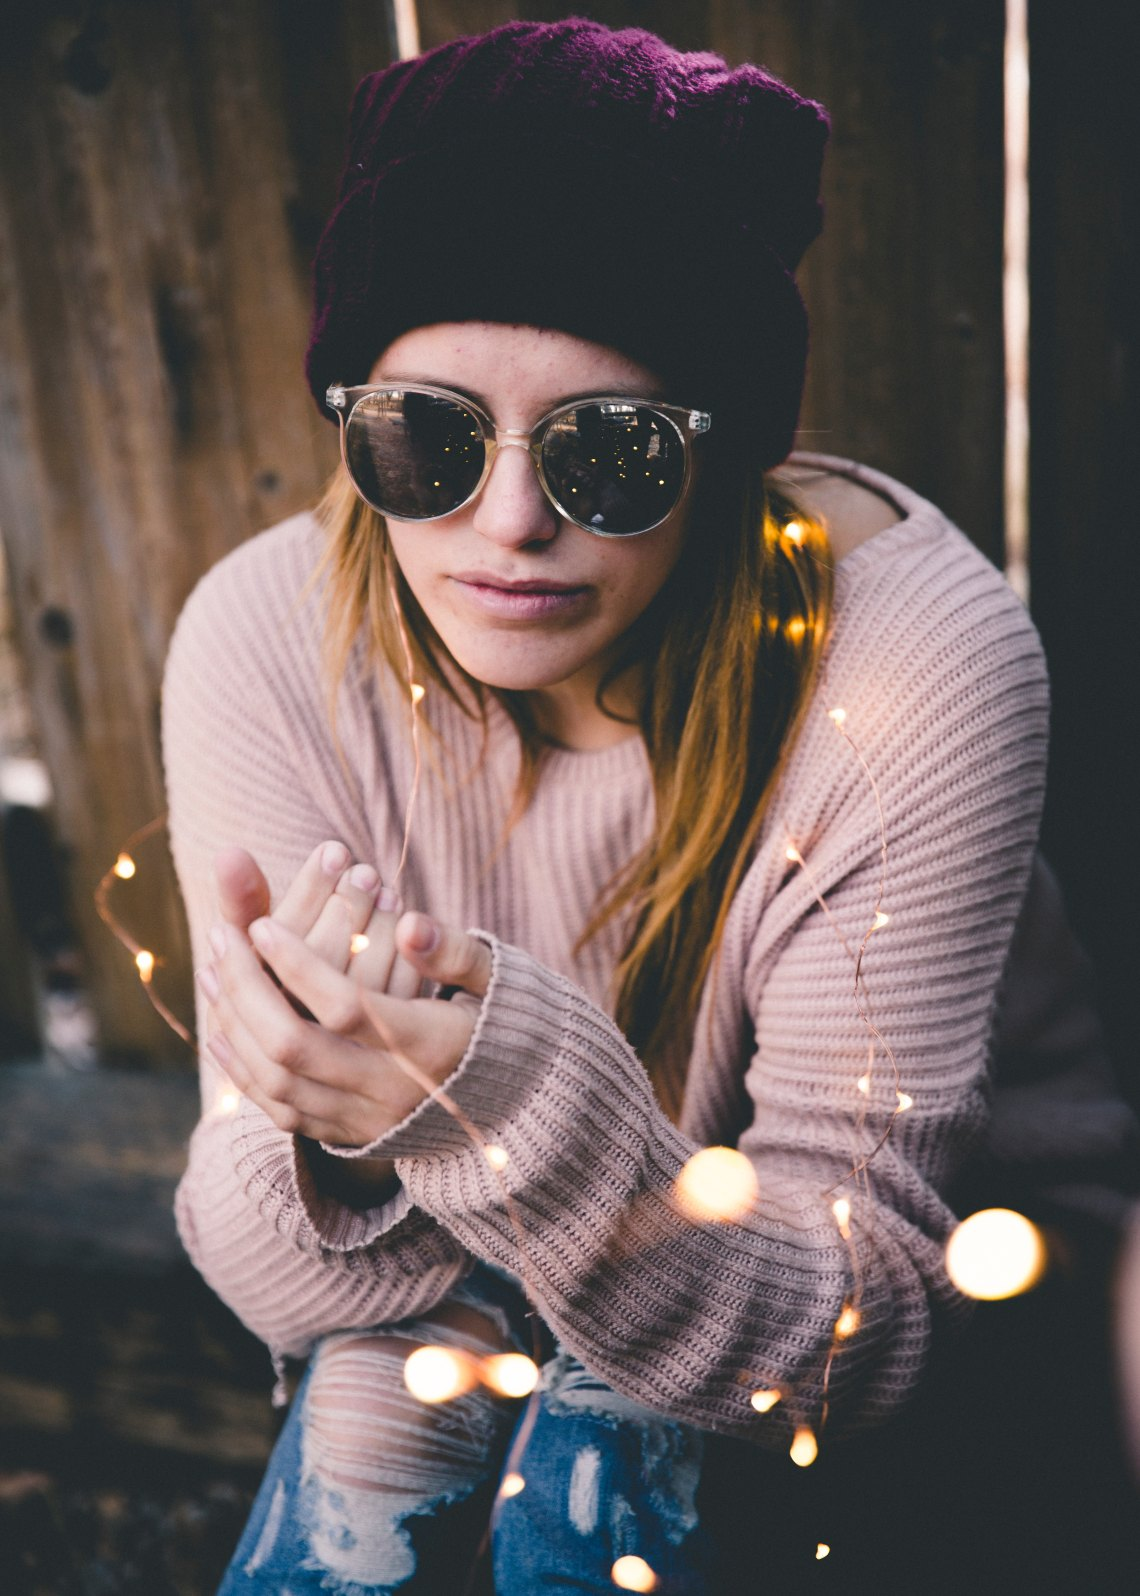 girl in a sweater with sunglasses and twinkle lights